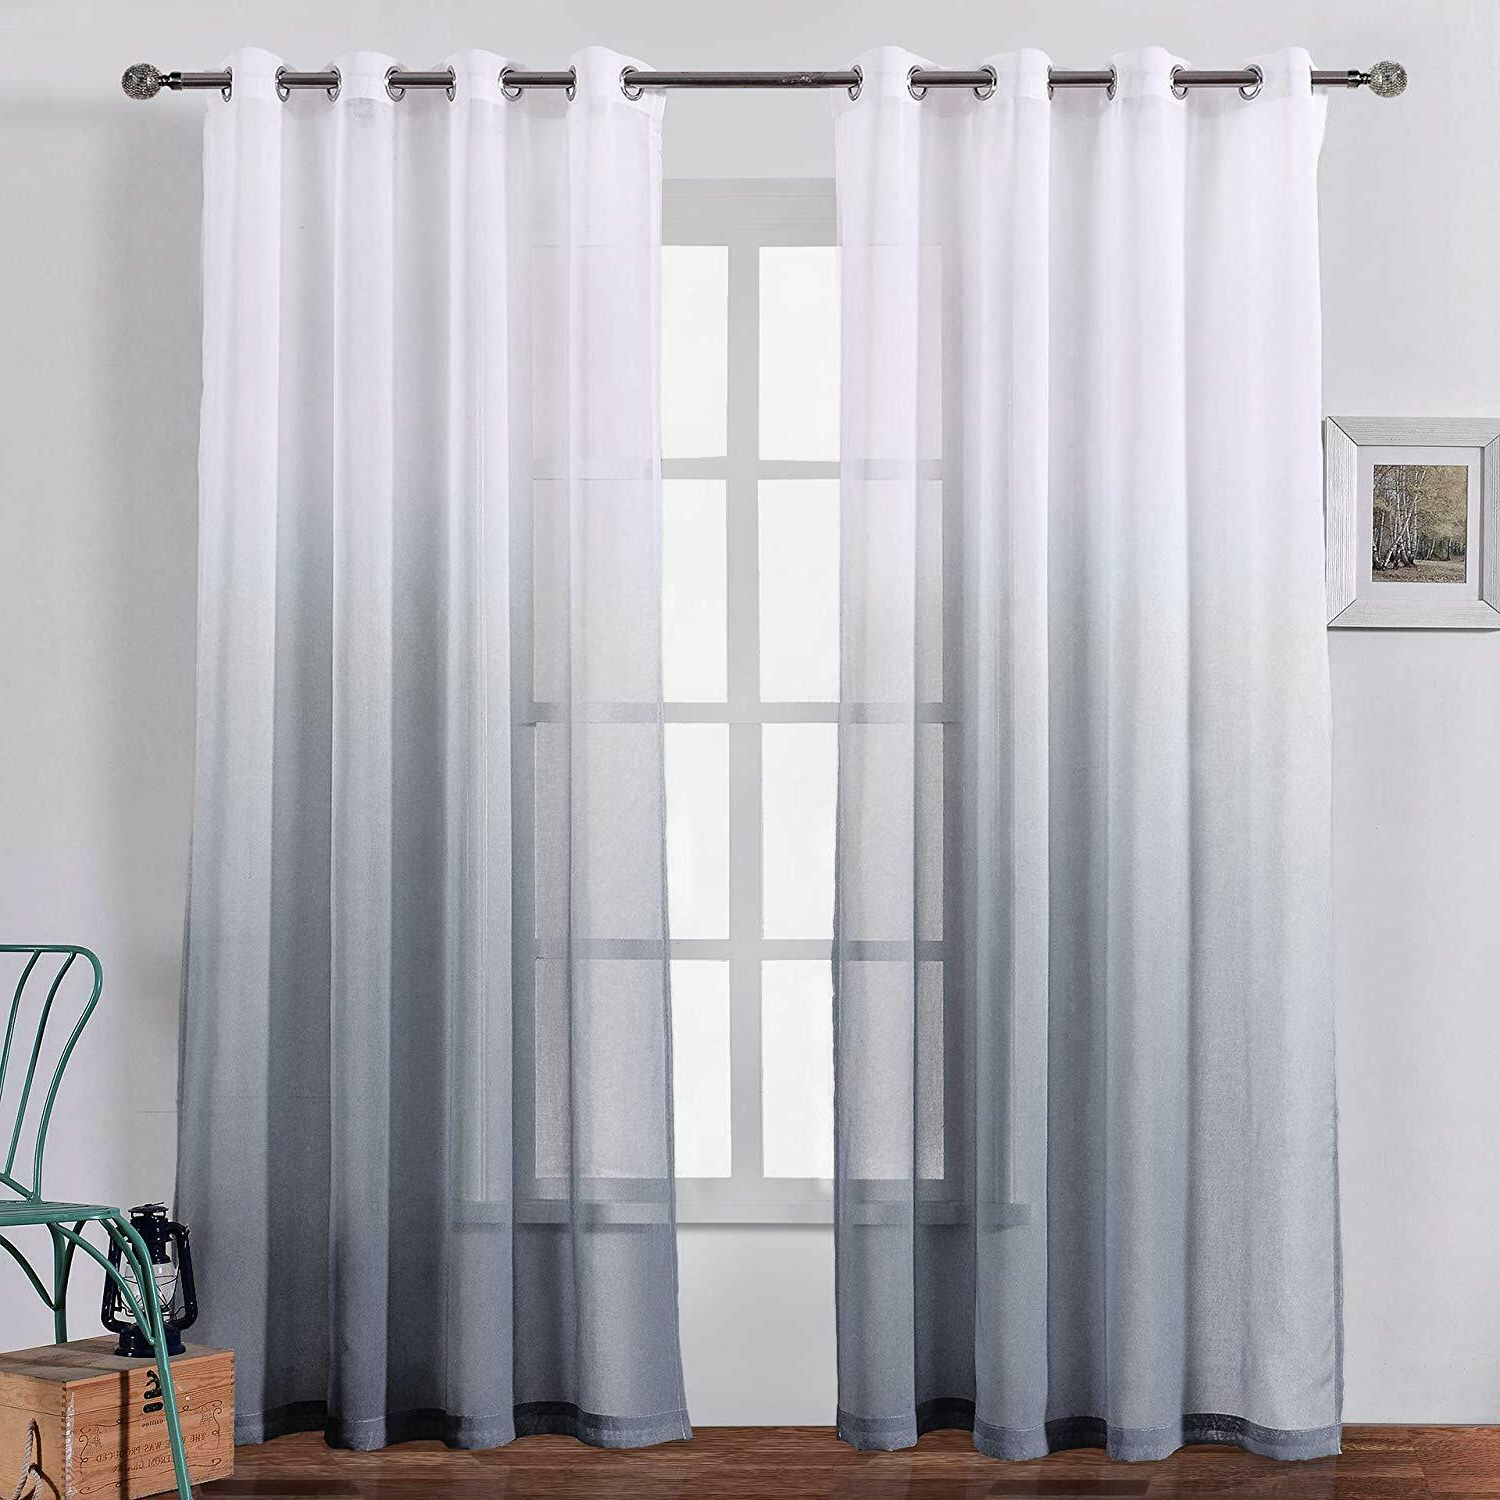 Bermino 54 X 95 Inch Faux Linen Sheer Curtains Grommet Ombre Semi Sheer Window C For Best And Newest Ombre Faux Linen Semi Sheer Curtains (View 5 of 20)